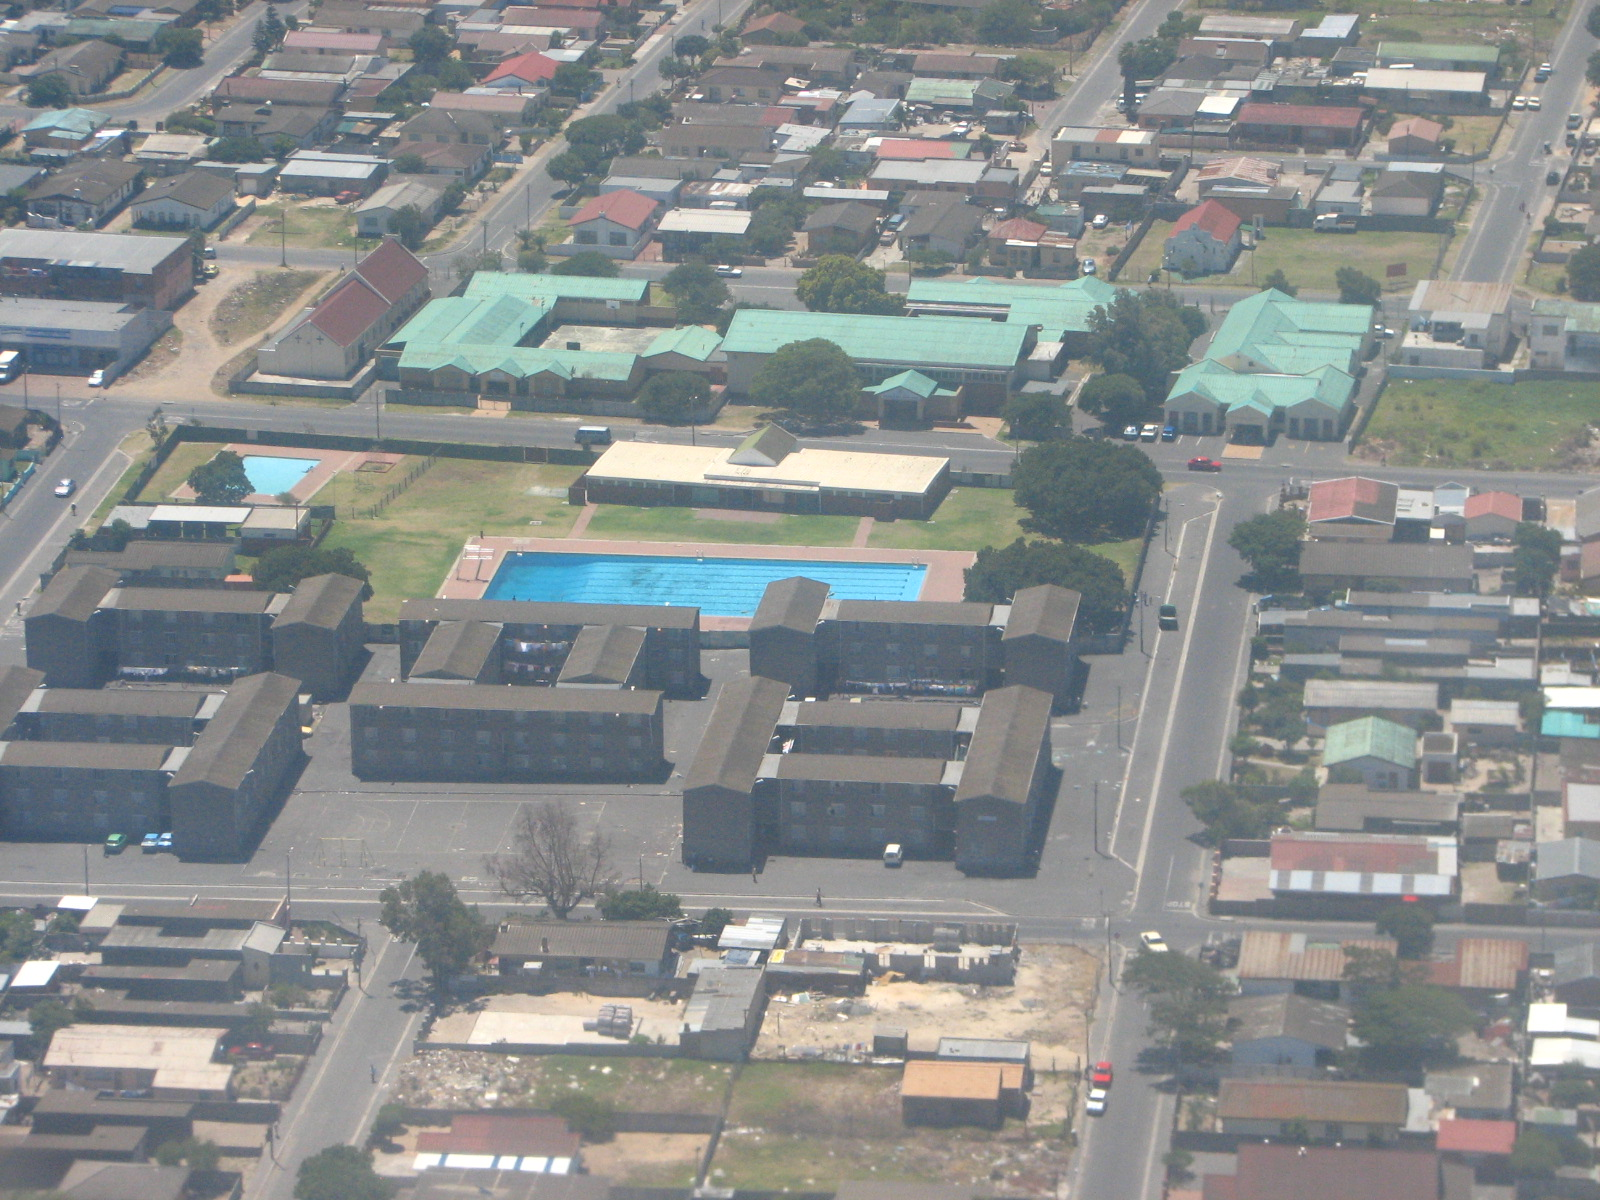 Kulula airline cheapest from johannesburg to durban Linden public swimming pool johannesburg